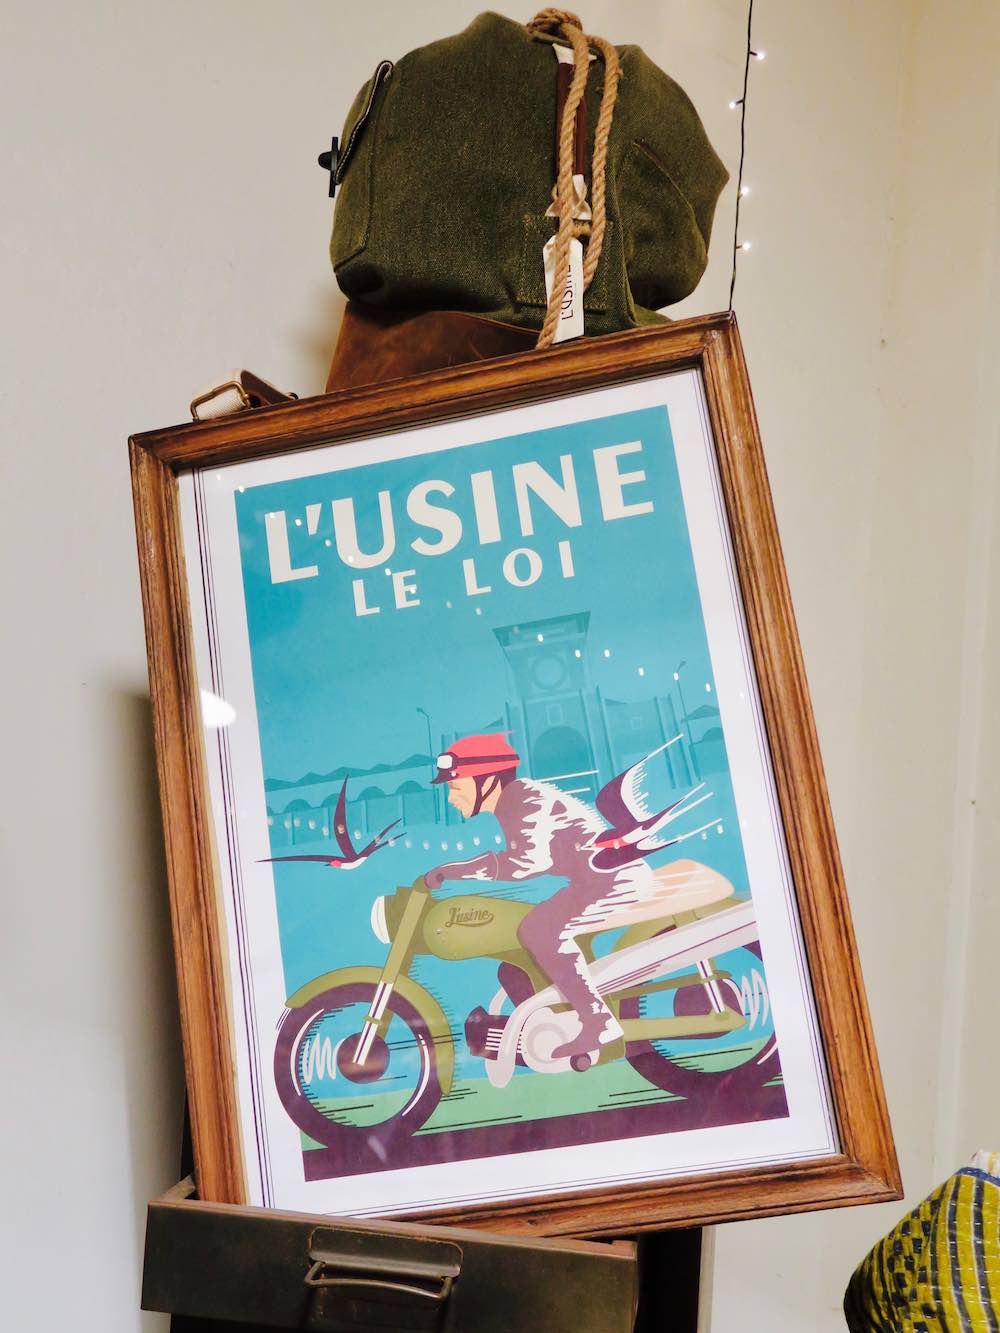 Logo and poster of L'Usine le Loi Saigon |curlytraveller.com